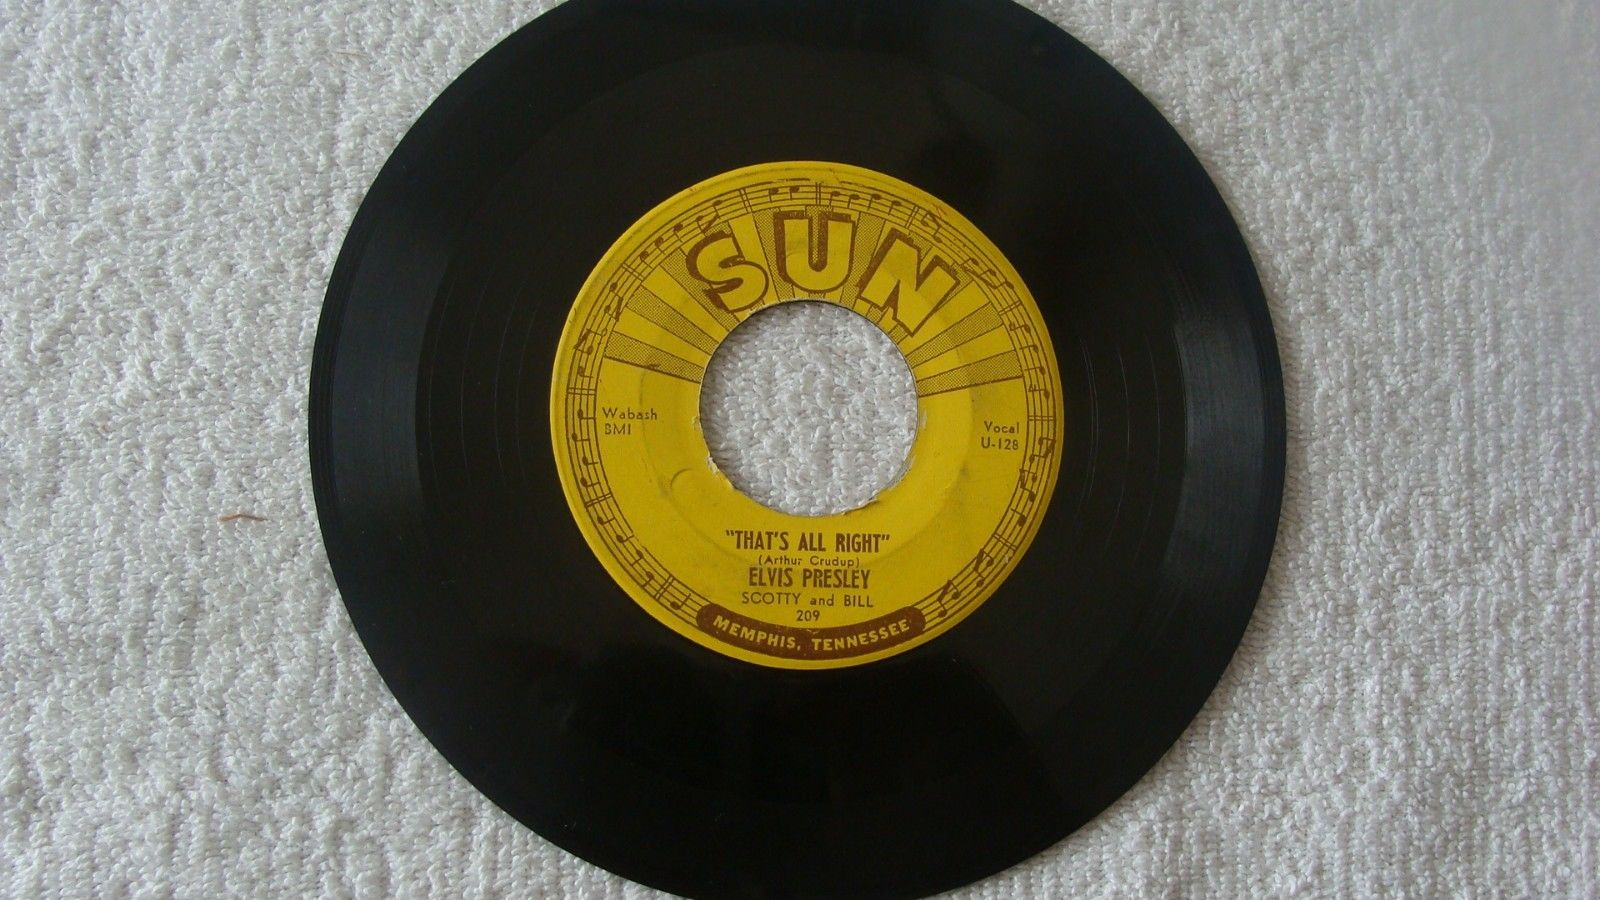 REDUCED $500  ELVIS - SUN 209 - THAT'S ALL RIGHT -  ROCKABILLY -  45 RPM, VG+